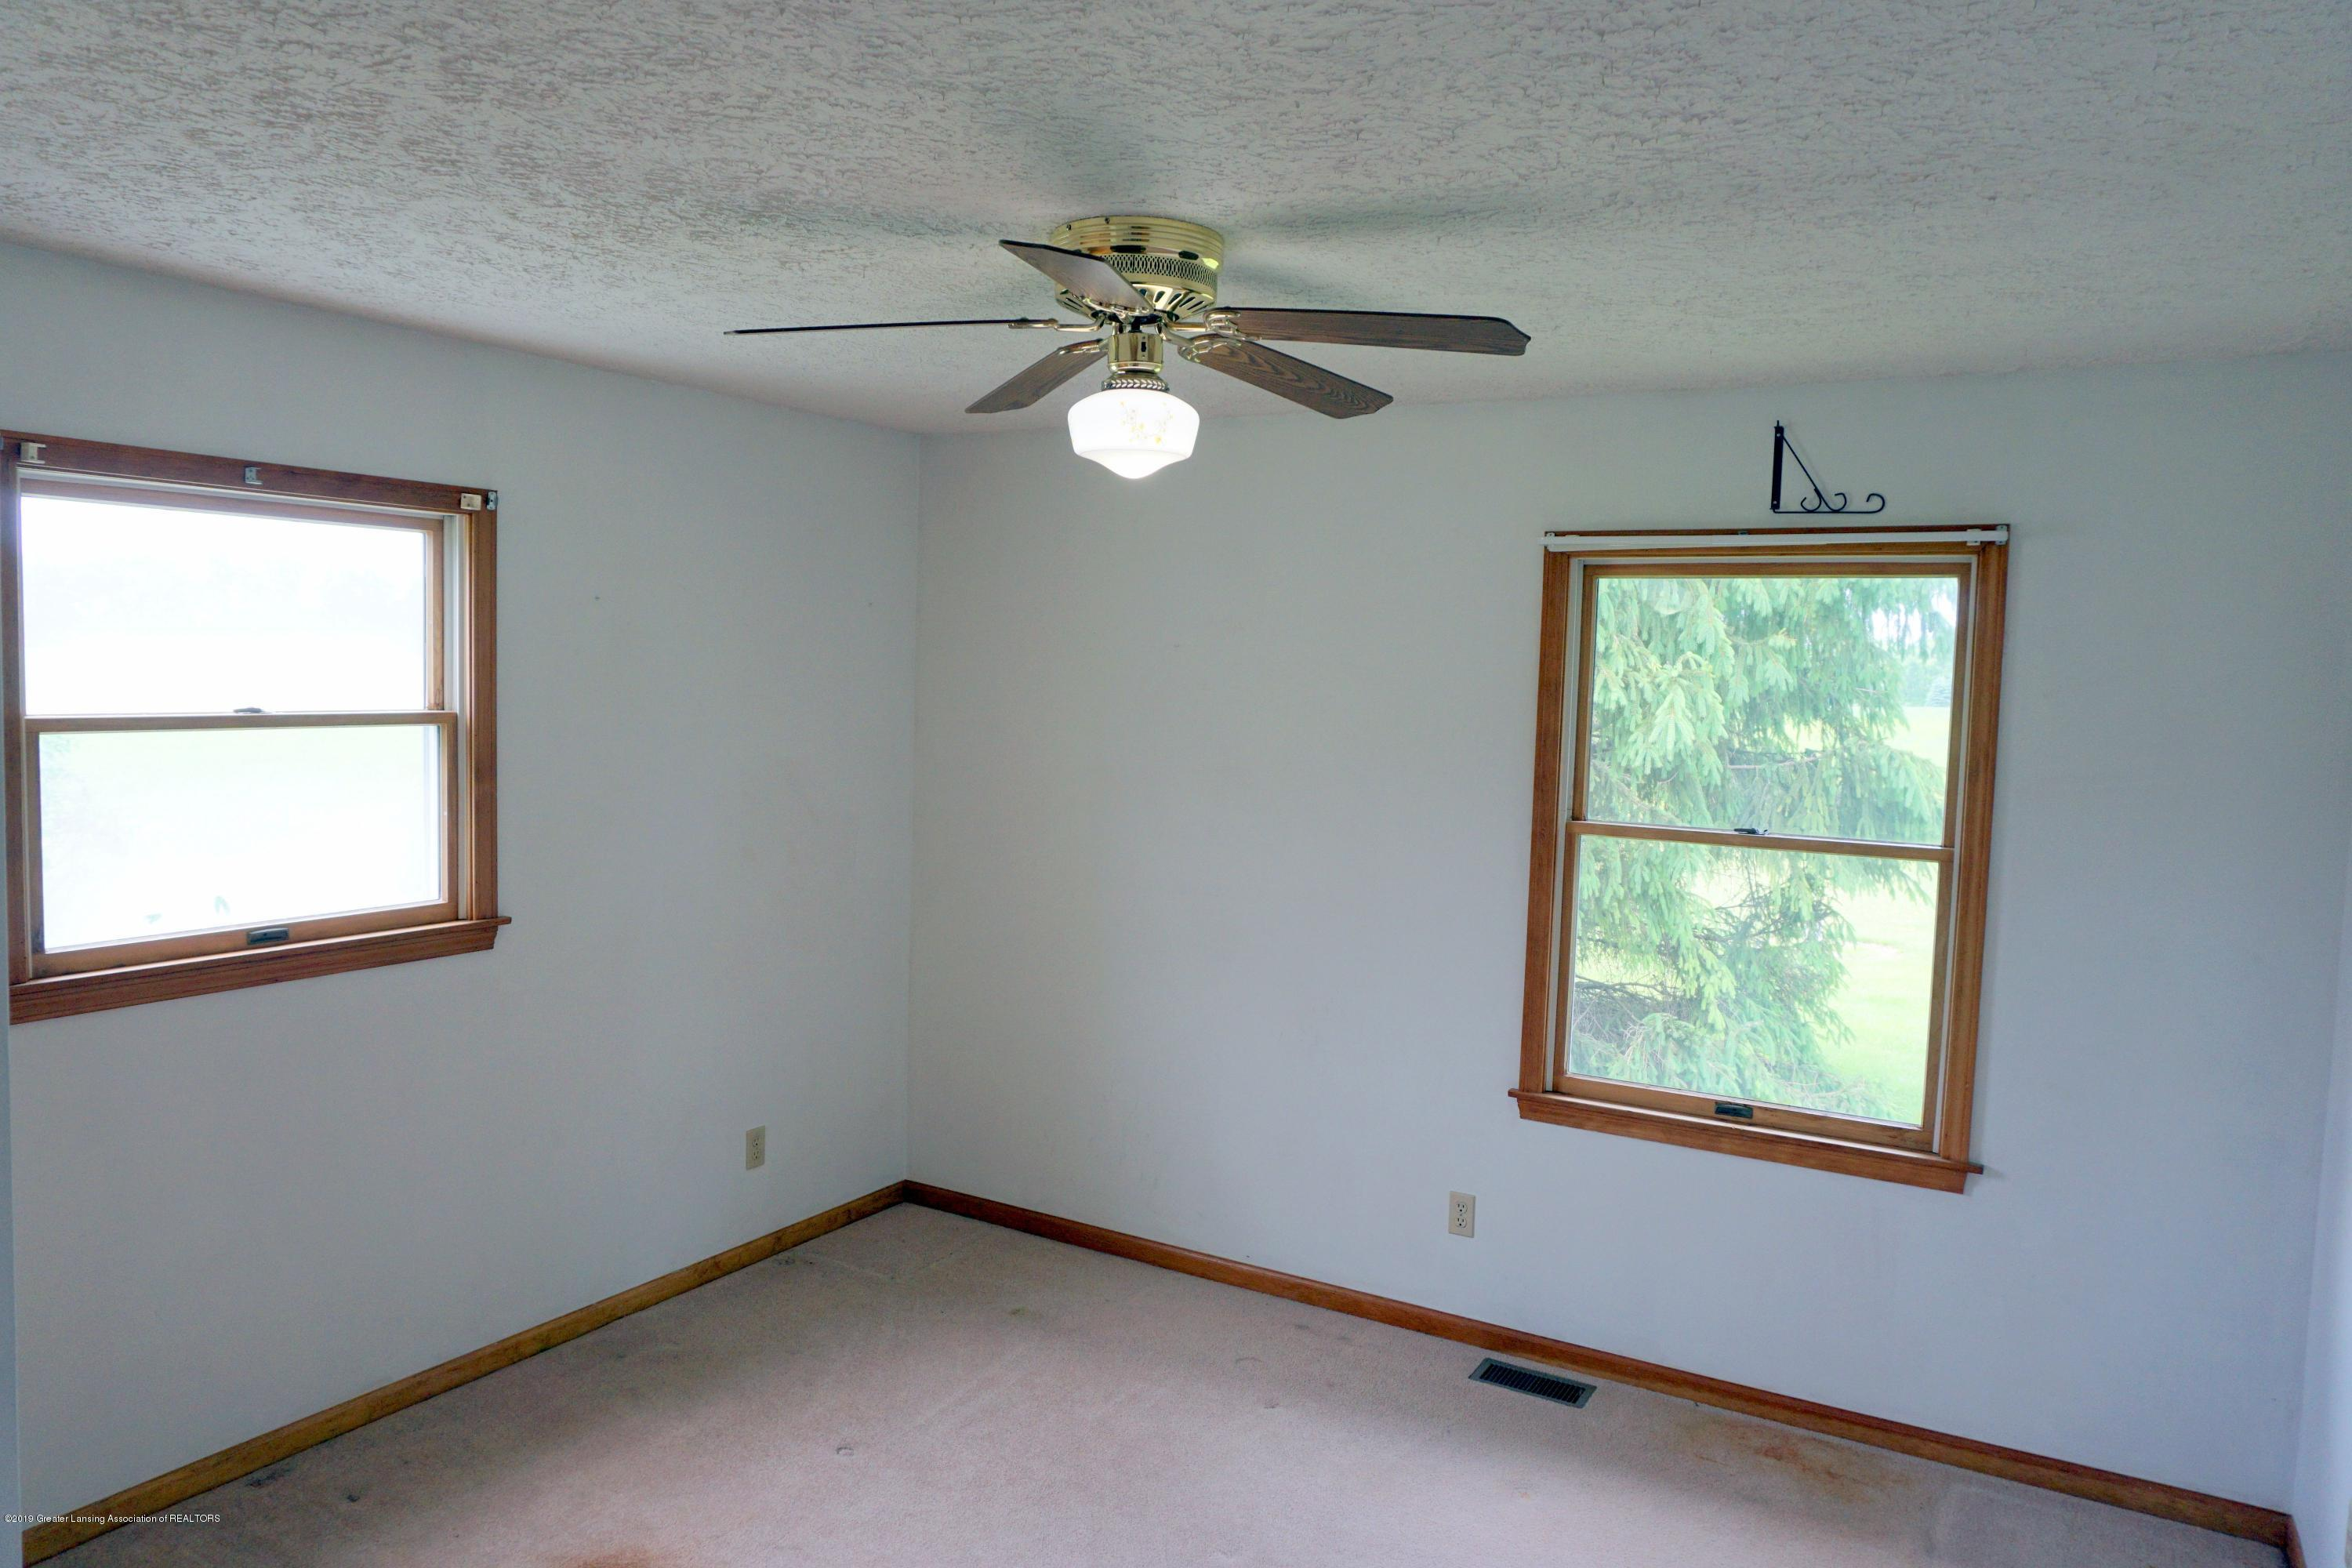 5780 Leland Rd - Bedroom #3 - 18